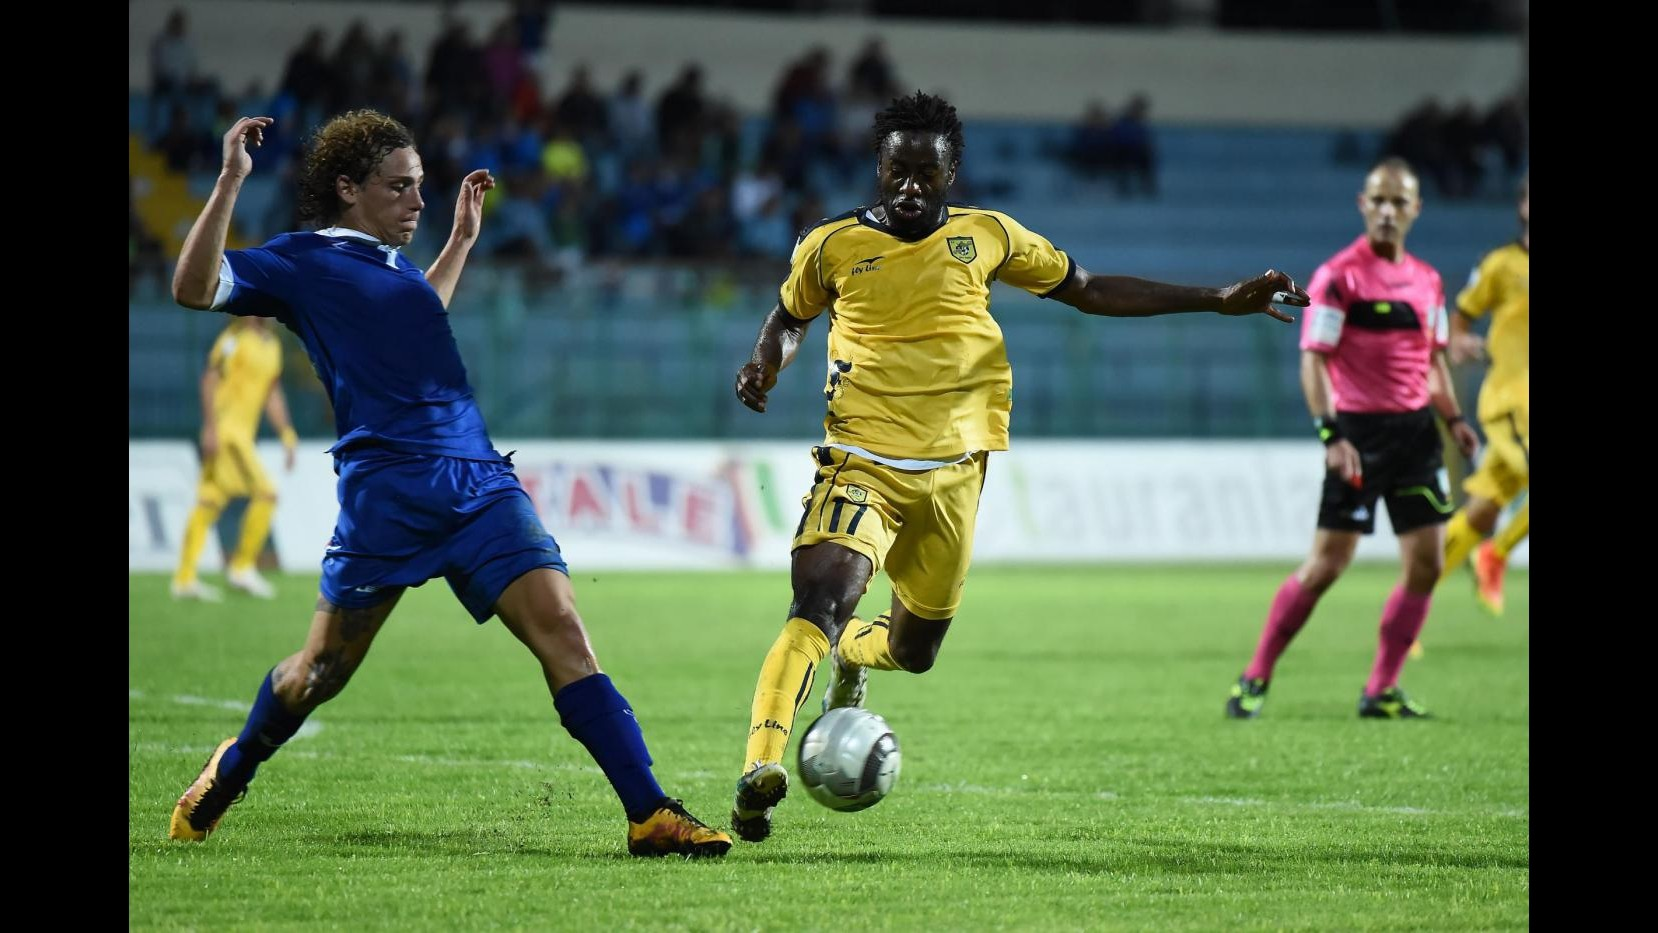 Serie C, Paganese-Juve Stabia 1-2